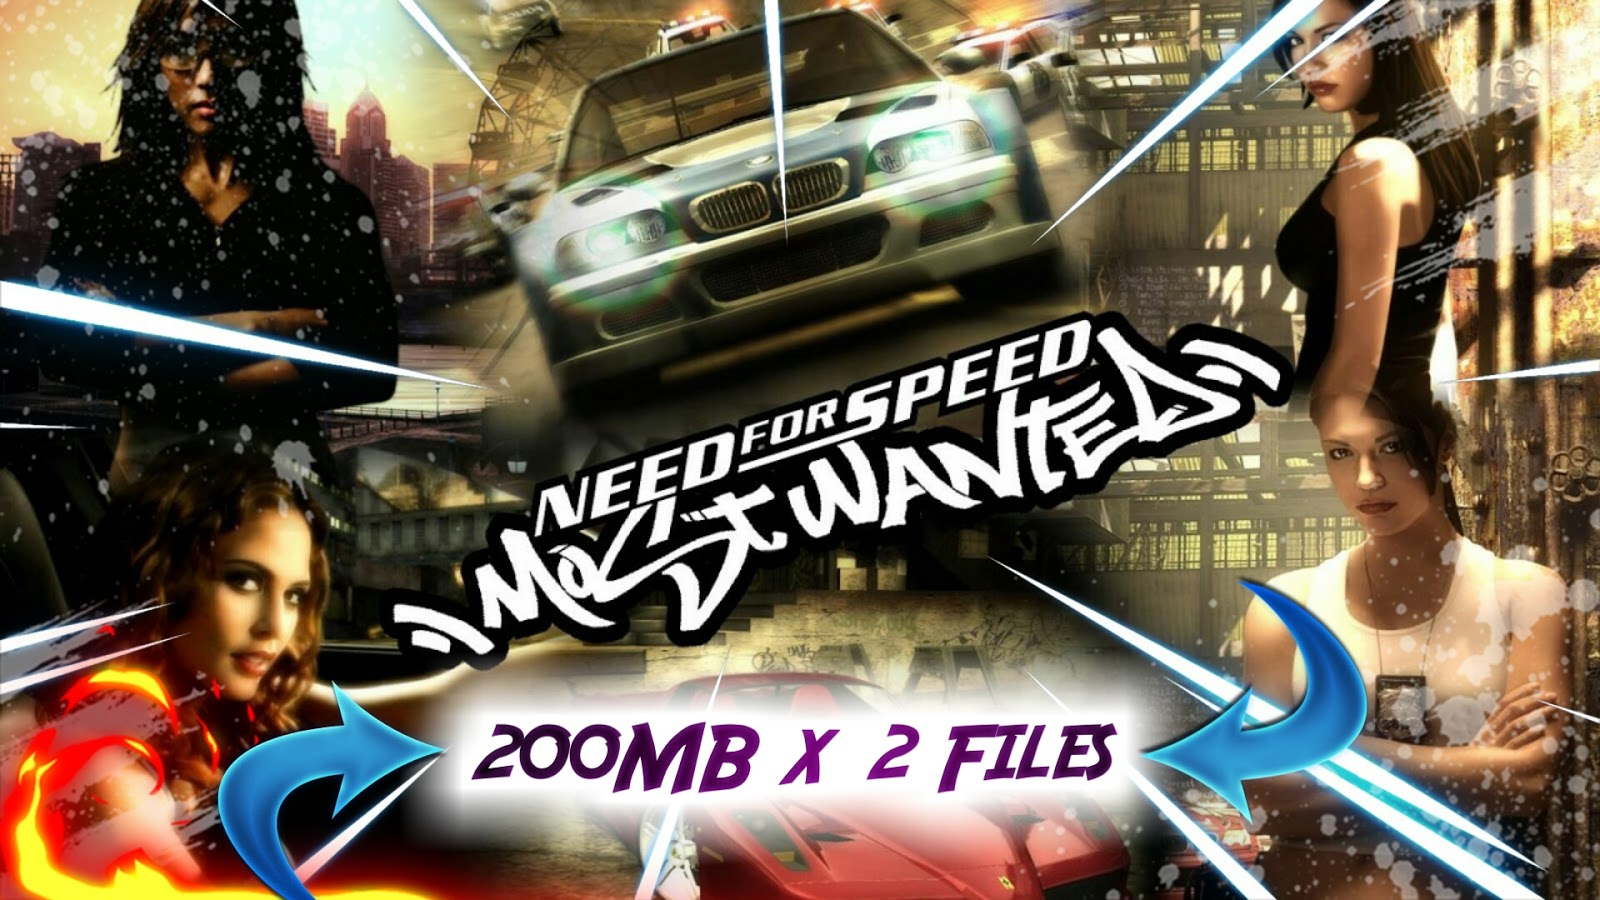 [353MB] Need for Speed Most Wanted 2005 Game for PC Free ...